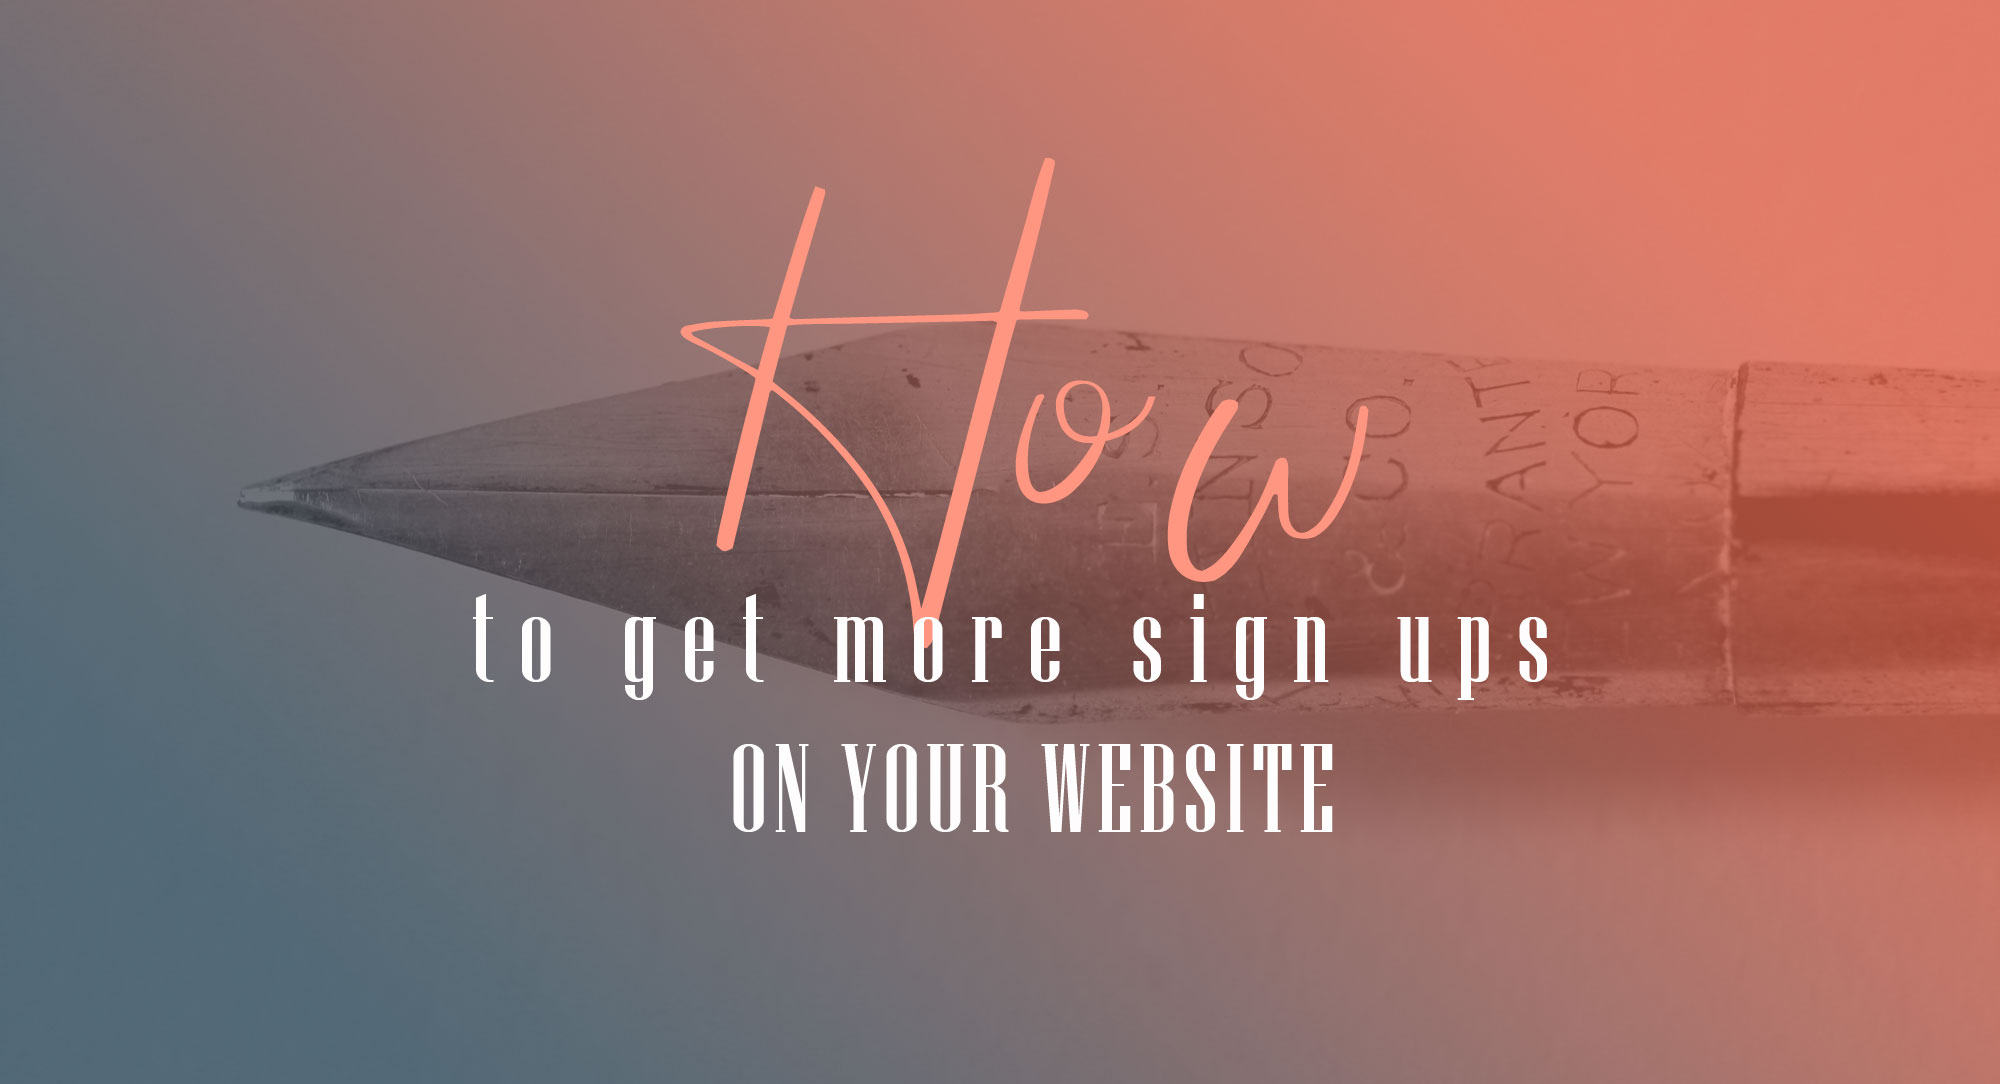 How-to-get-more-sign-ups-on-your-website